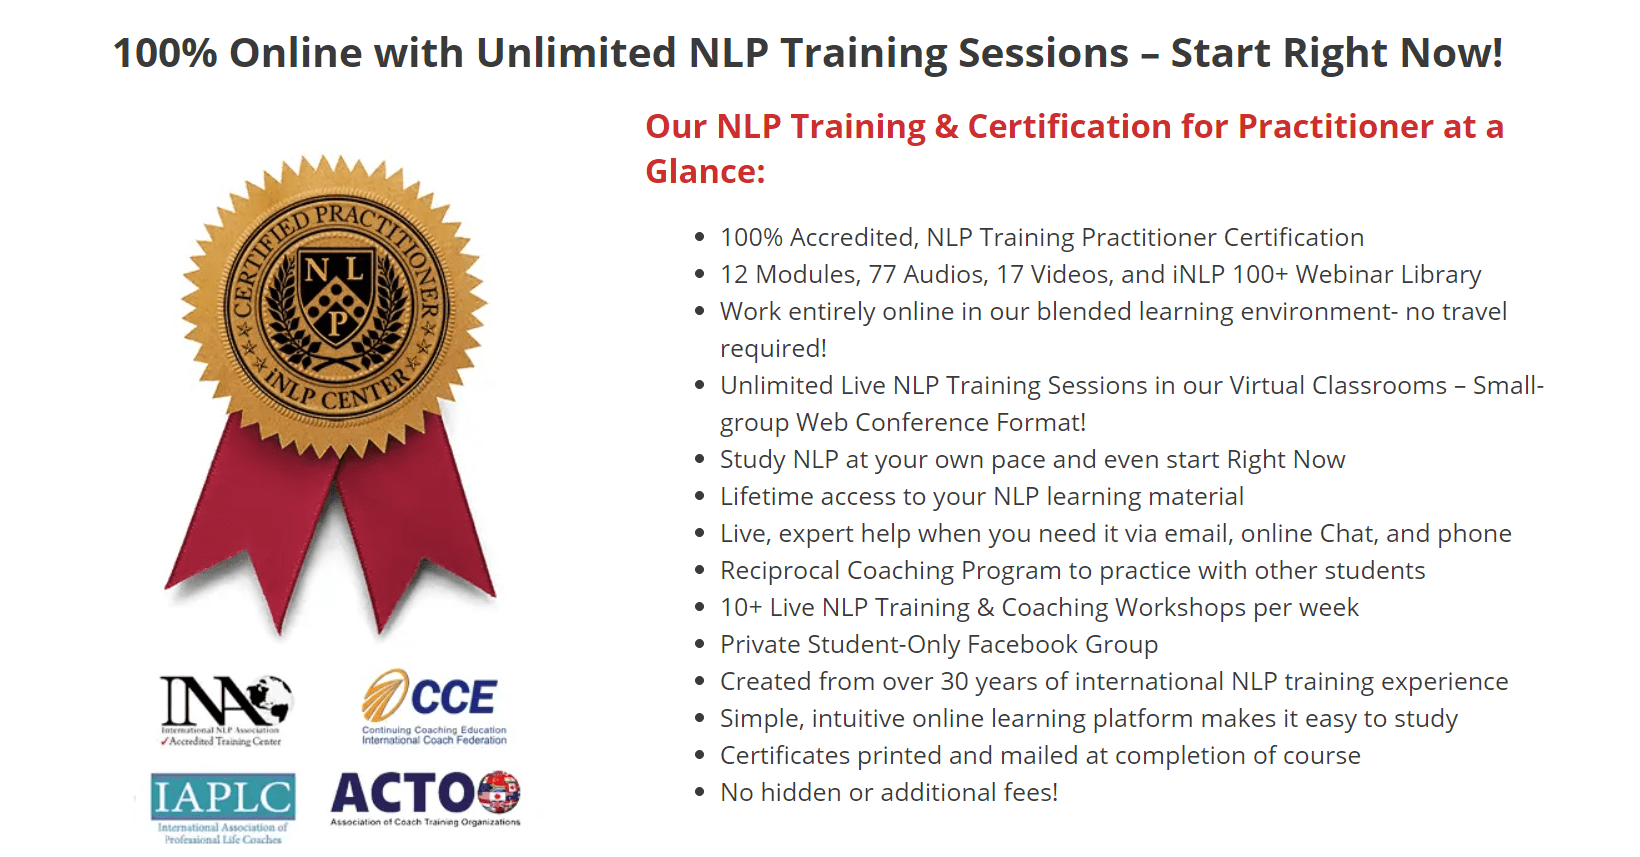 NLP Training & Certification for Practitioner